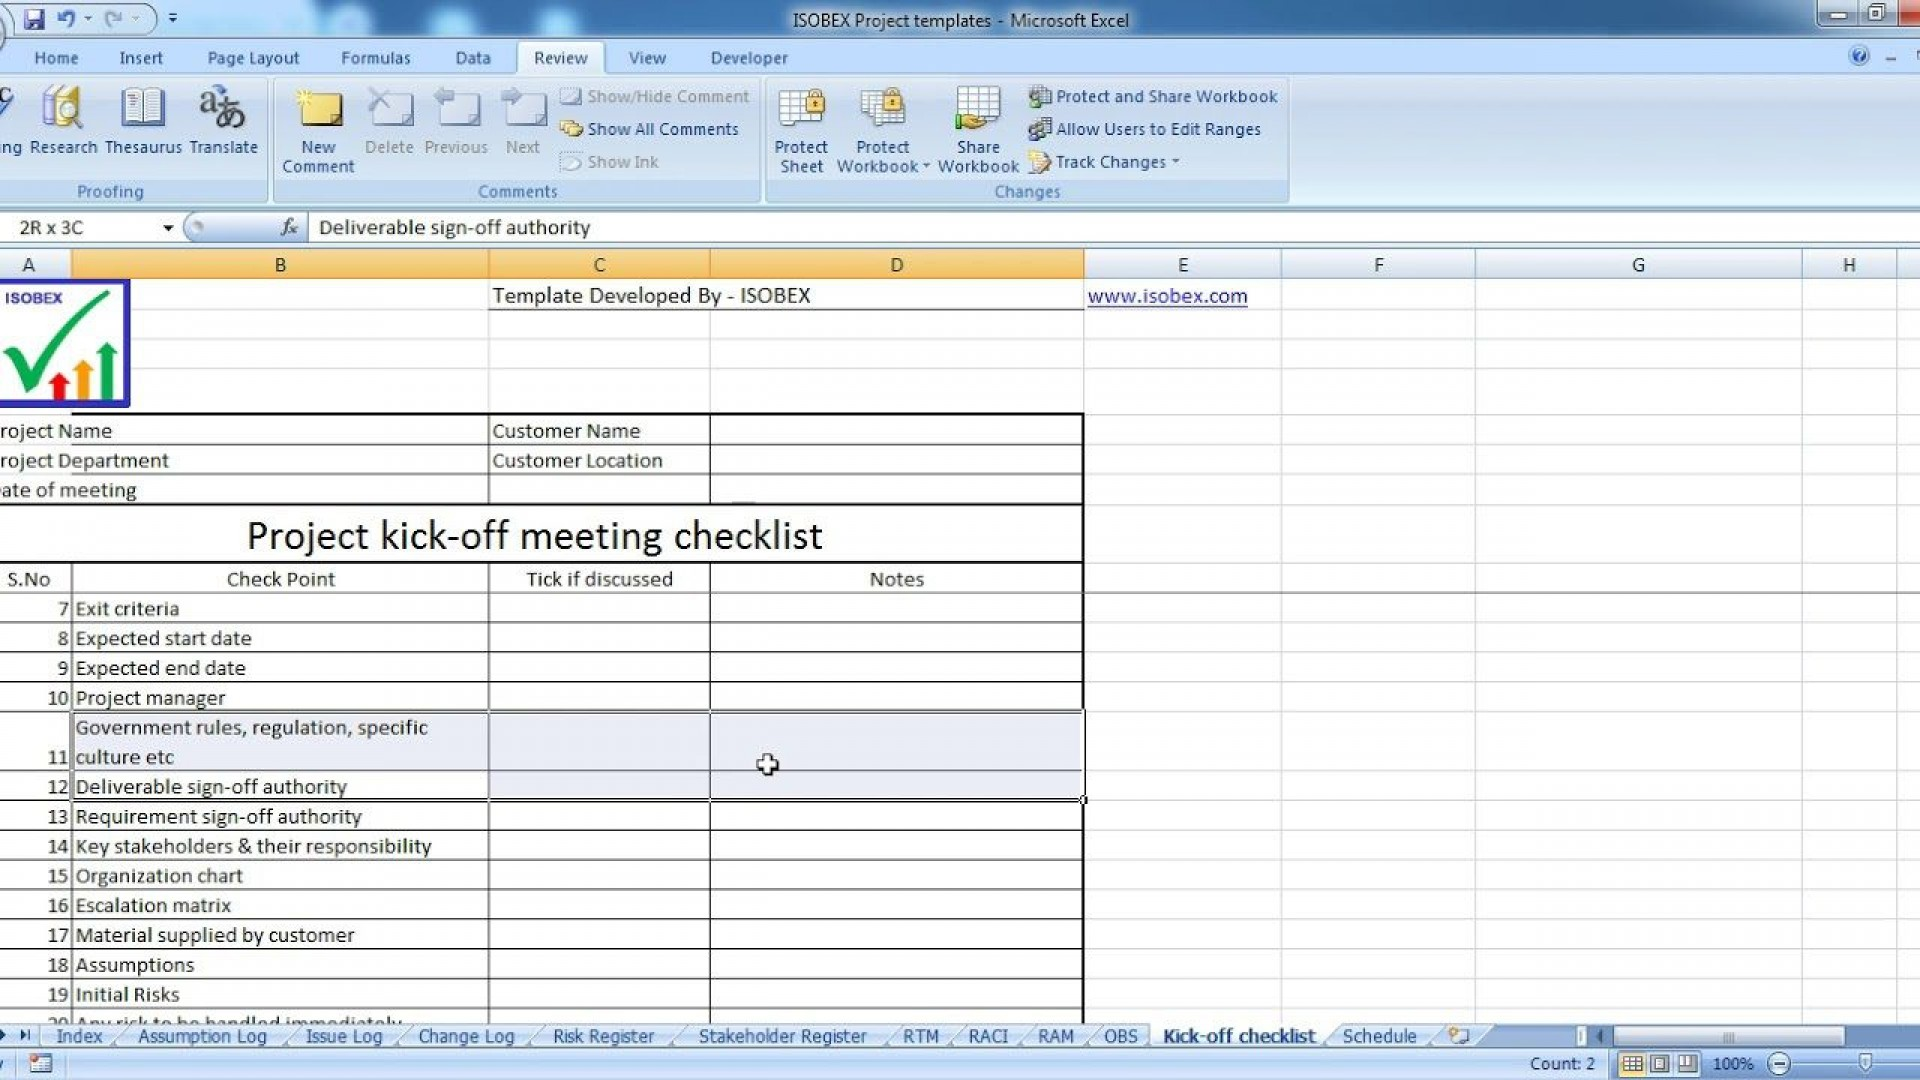 006 Awesome Project Kickoff Meeting Template Xl Picture  Xls Excel1920